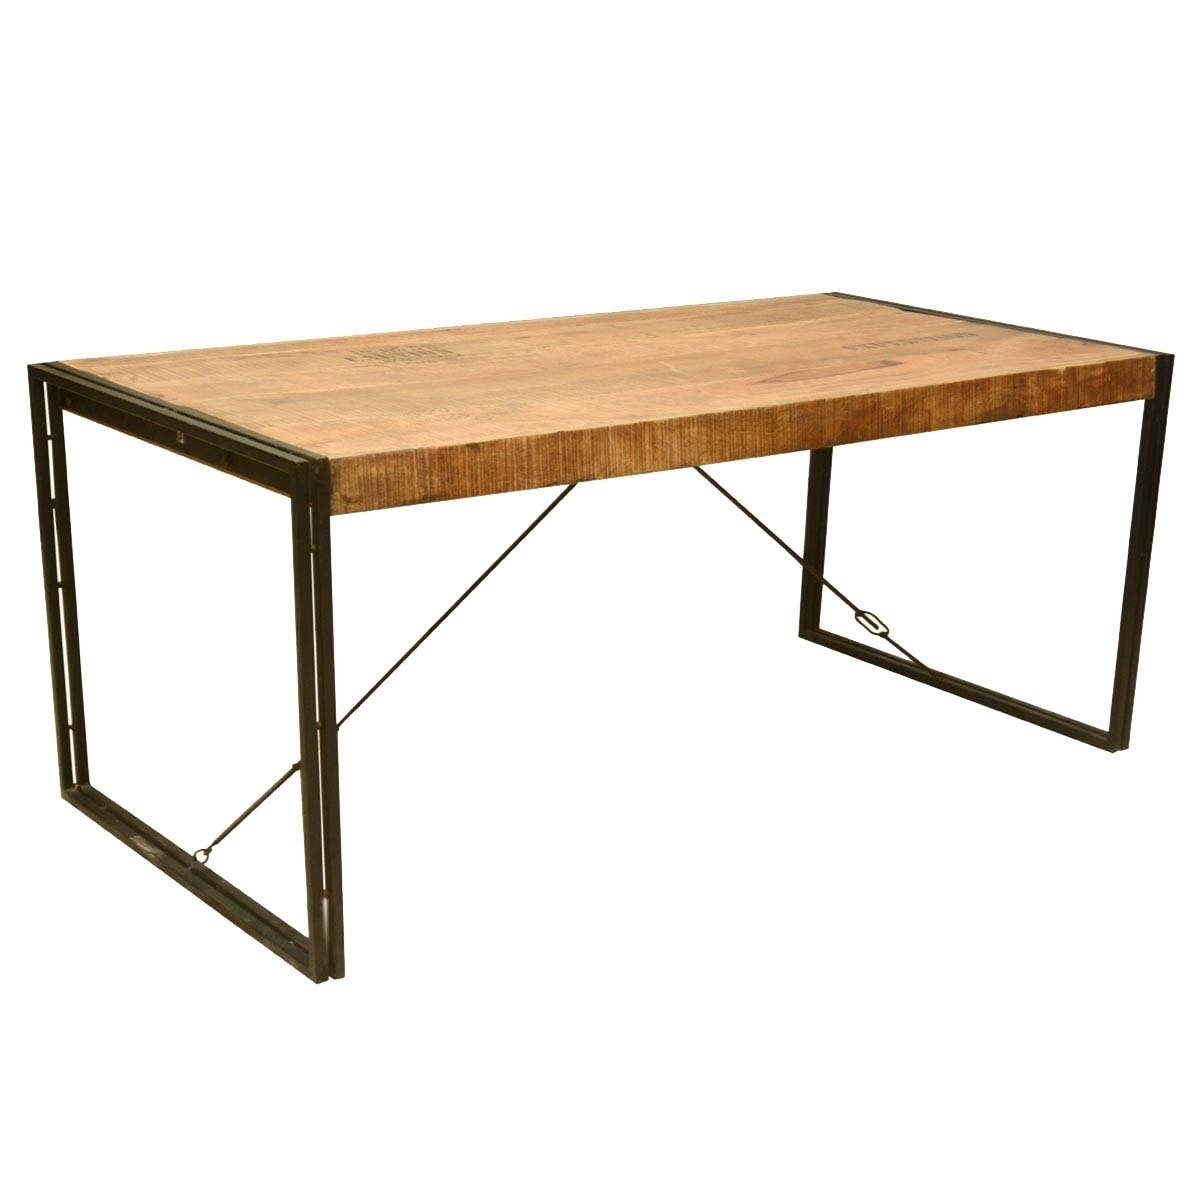 Large Rustic Industrial Style Mango Wood And Iron Dining Table Intended For Newest Mango Wood/iron Dining Tables (Image 9 of 20)